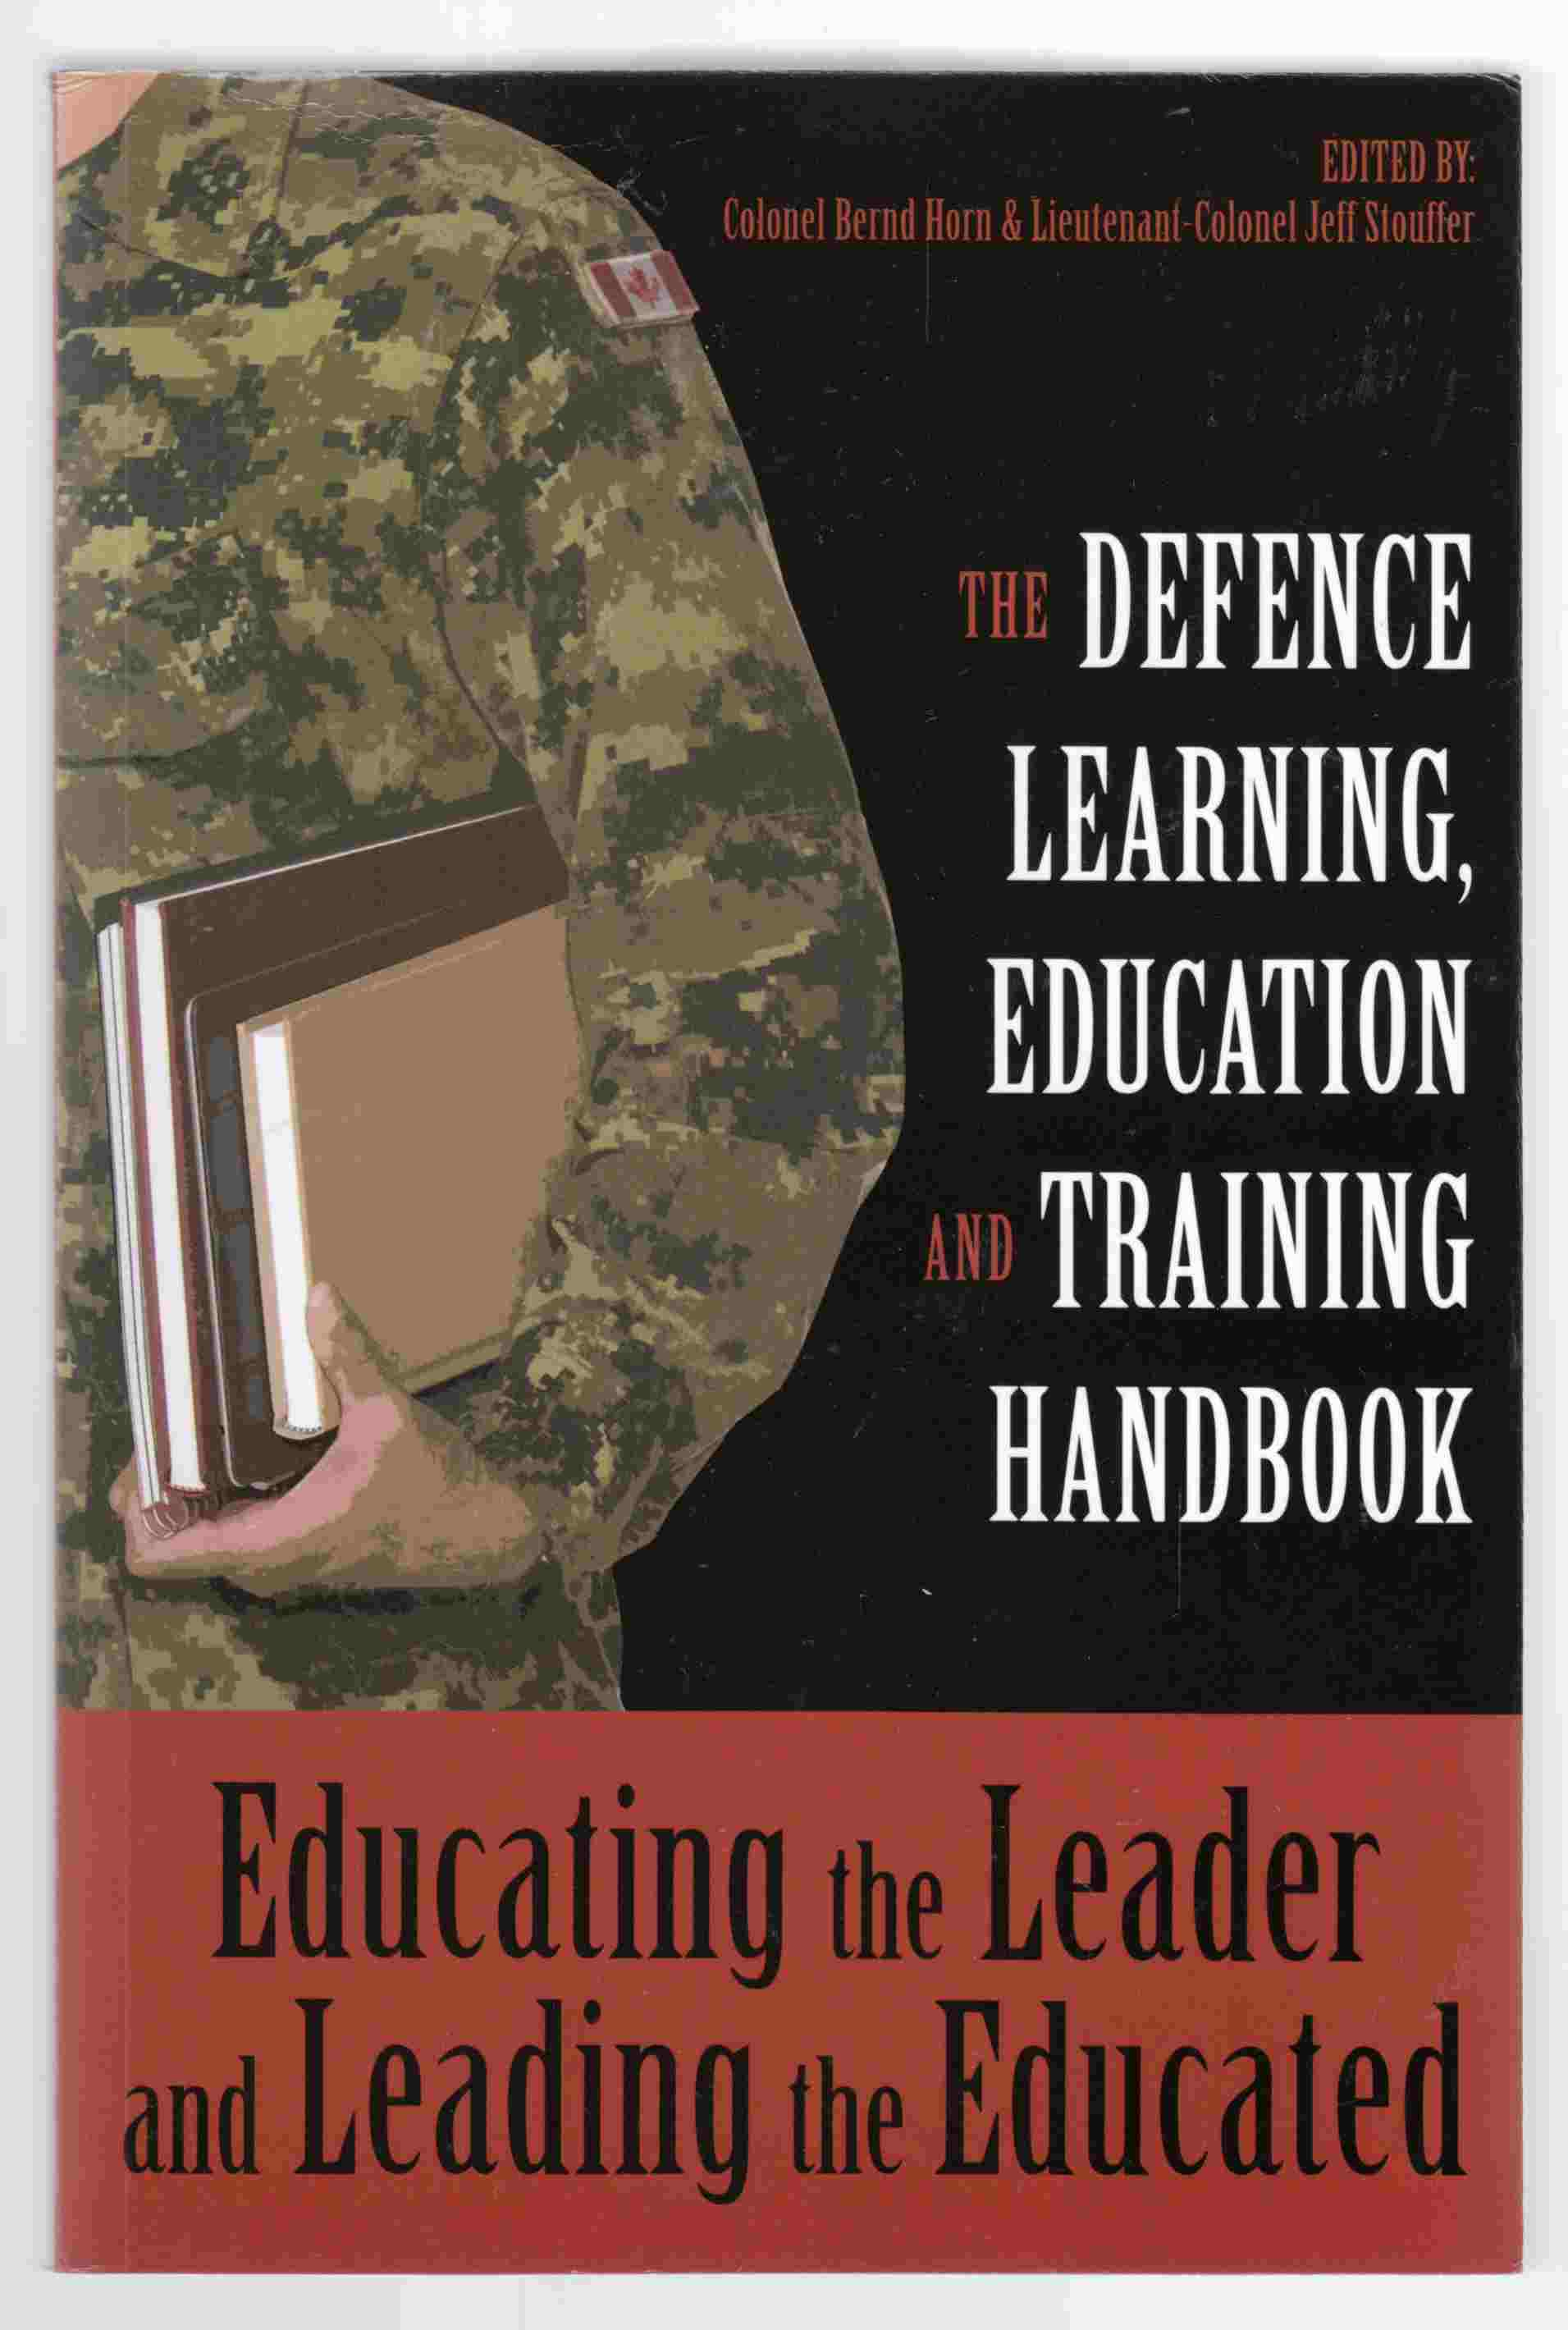 Image for Educating the Leader and Leading the Educated:  The Defence Learning, Education and Training Handbook